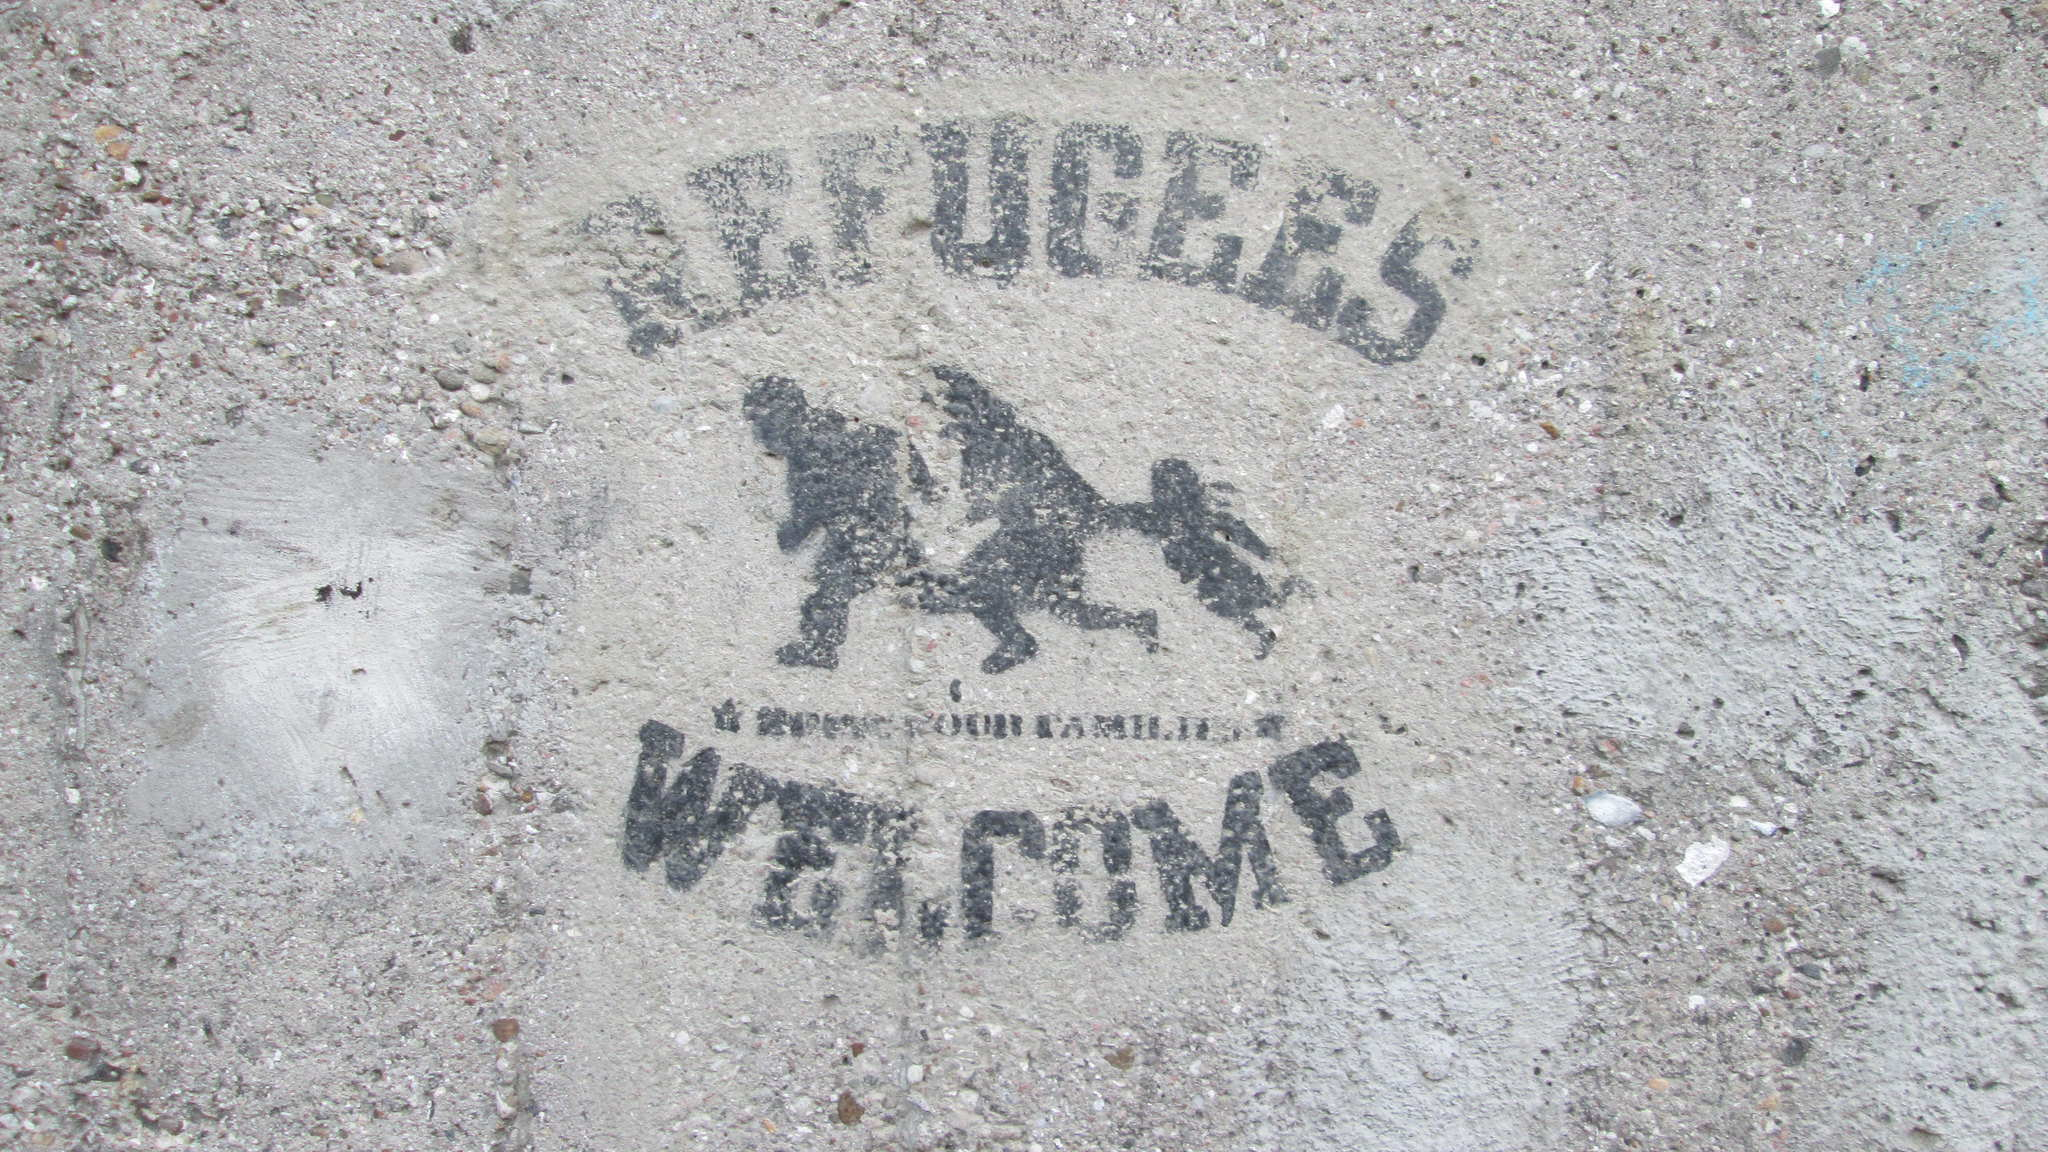 Covid-19 and the erosion of refugee protection rights